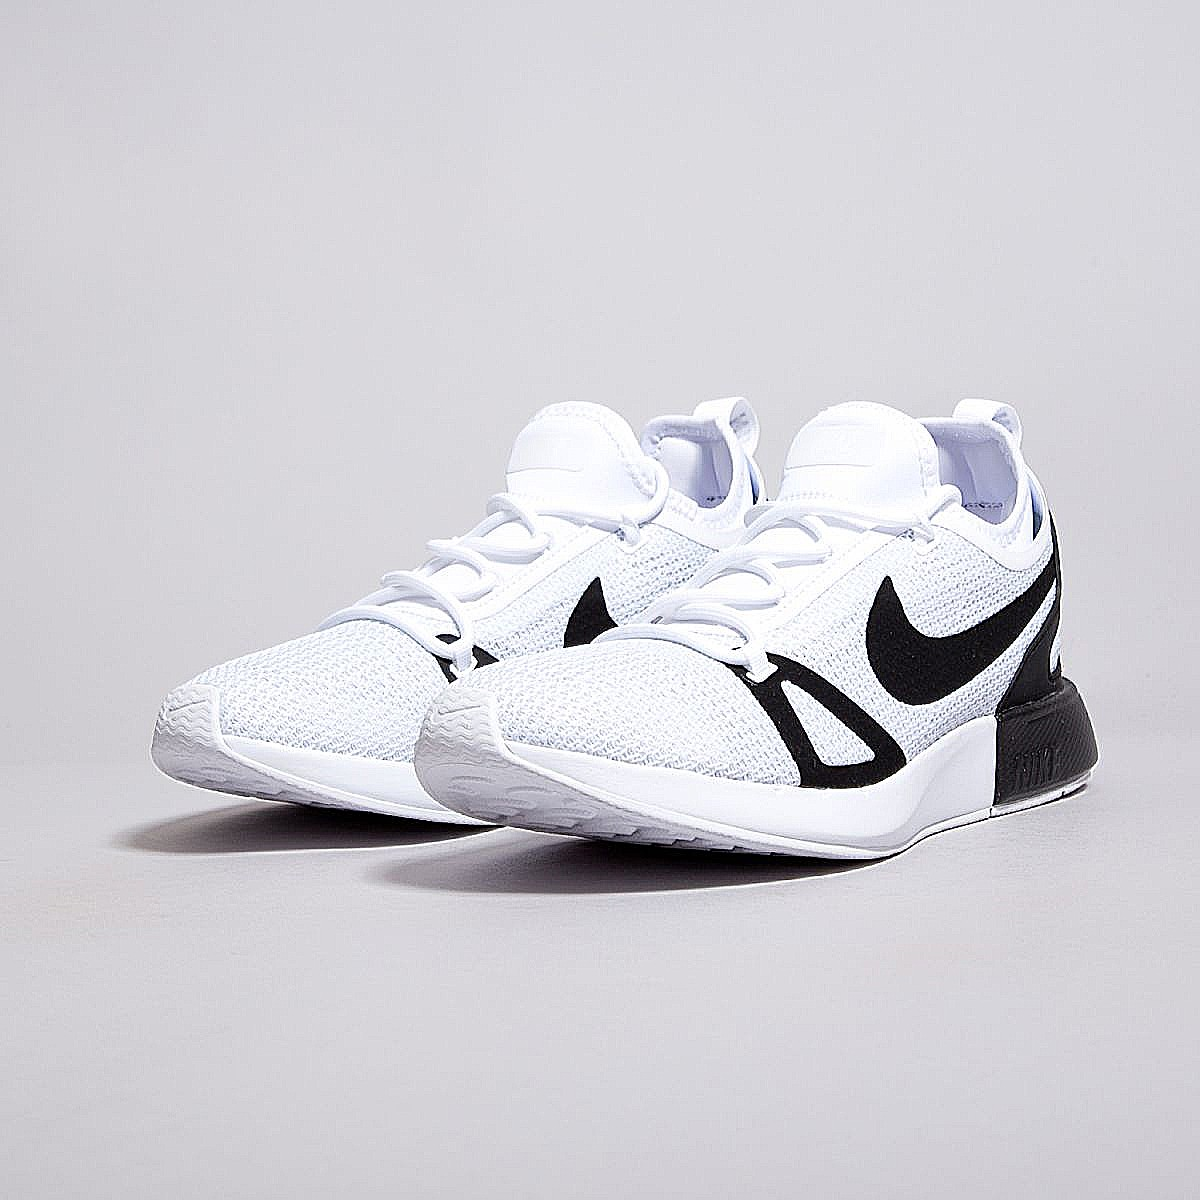 87d2b90ec795 BNIB NIKE DUEL RACER Classic Black White Sneaker Shoes Men US9.5 only  (direct from US authentic) (adidas NMD cortez air)